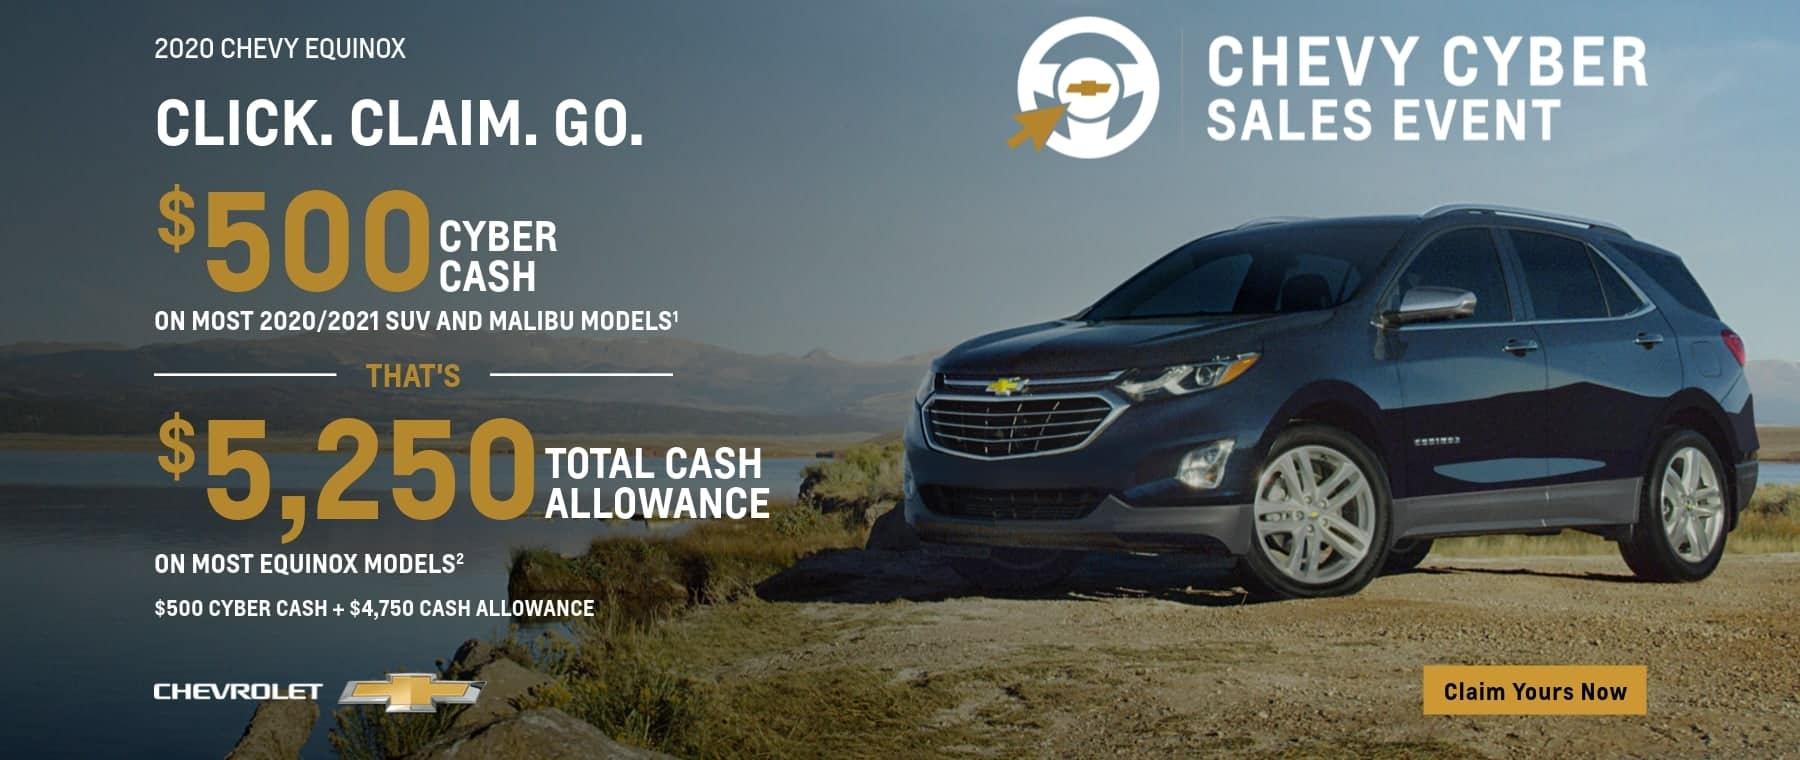 $500 Cyber Cash on most 2020/2021 SUV and Malibu models. That's $5,250 total cash allowance on most Equinox models. $500 cyber cash + $4,750 Cash Allowance.